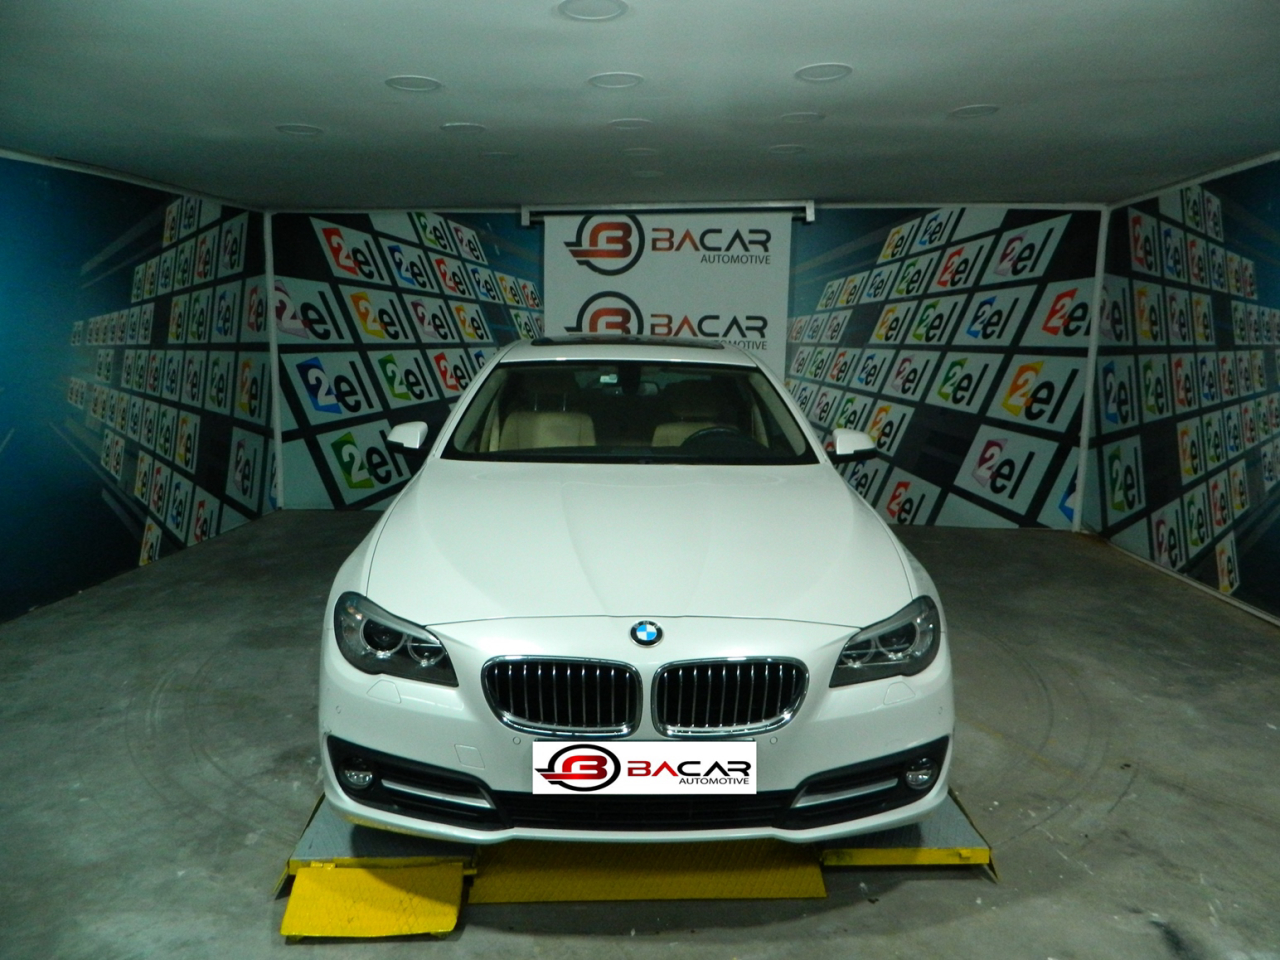 BMW 520i SERIES 5 520I SEDAN 4 Door